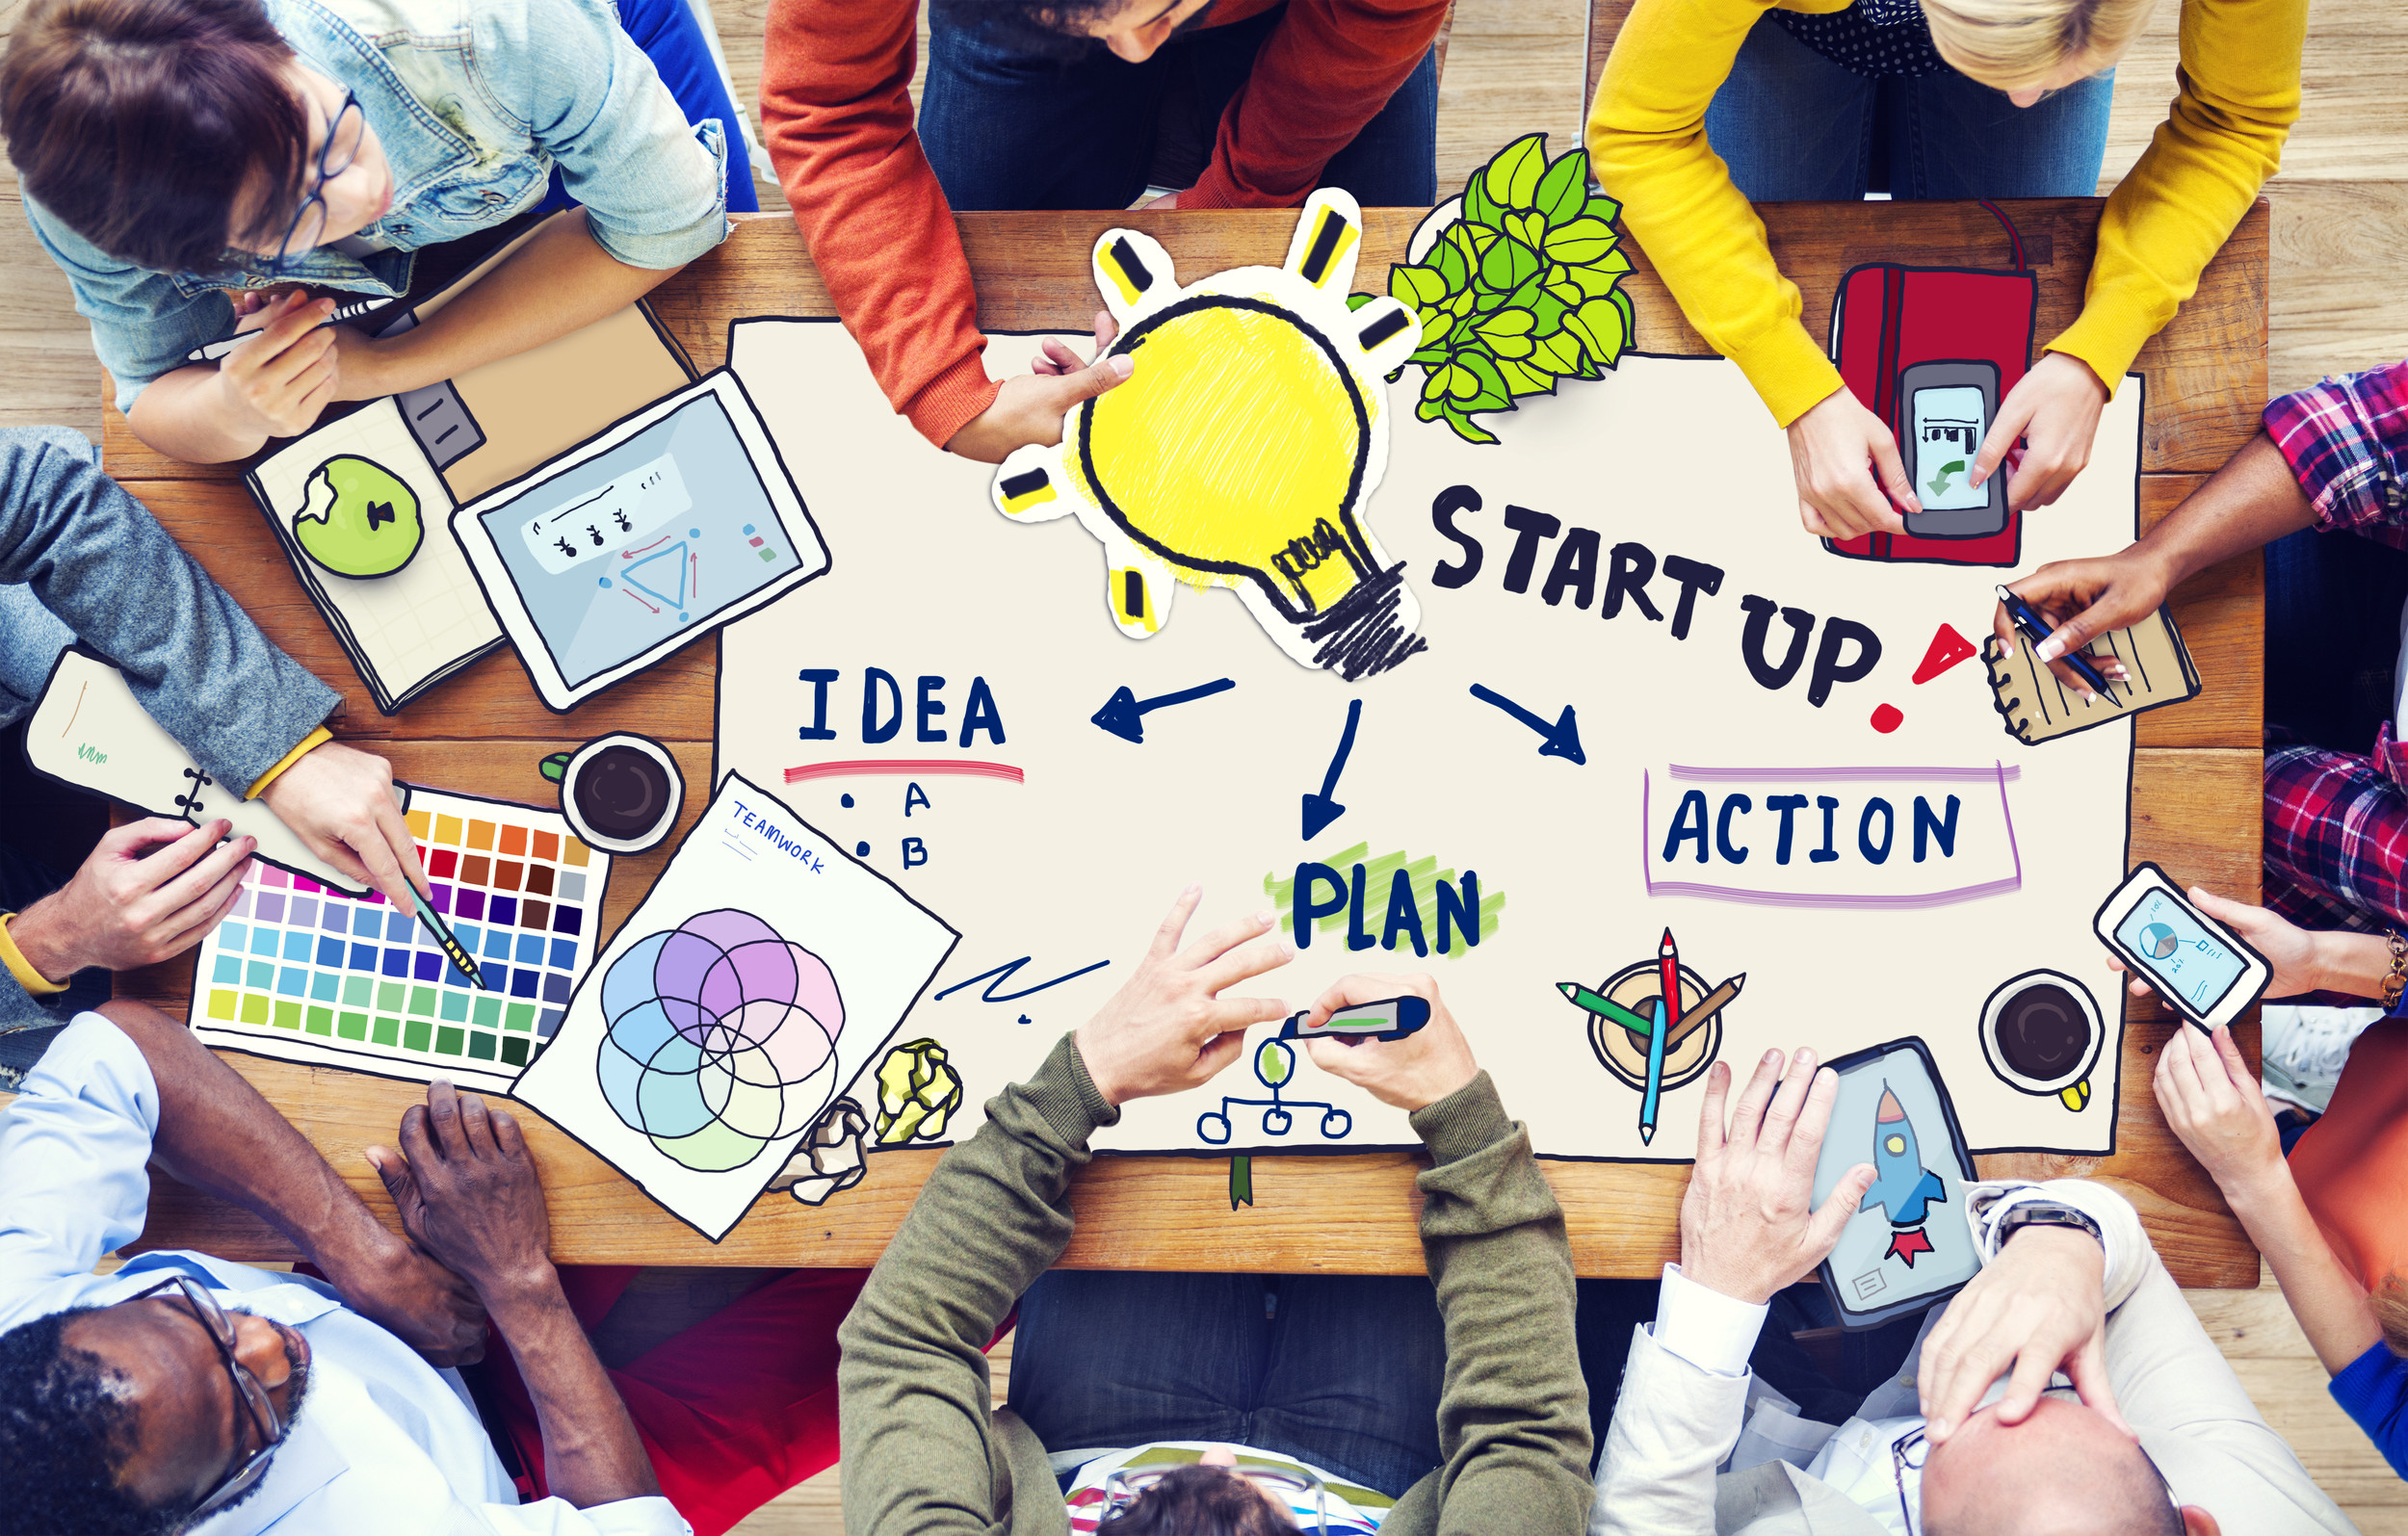 We all start somewhere: Six things to consider to help your start-up